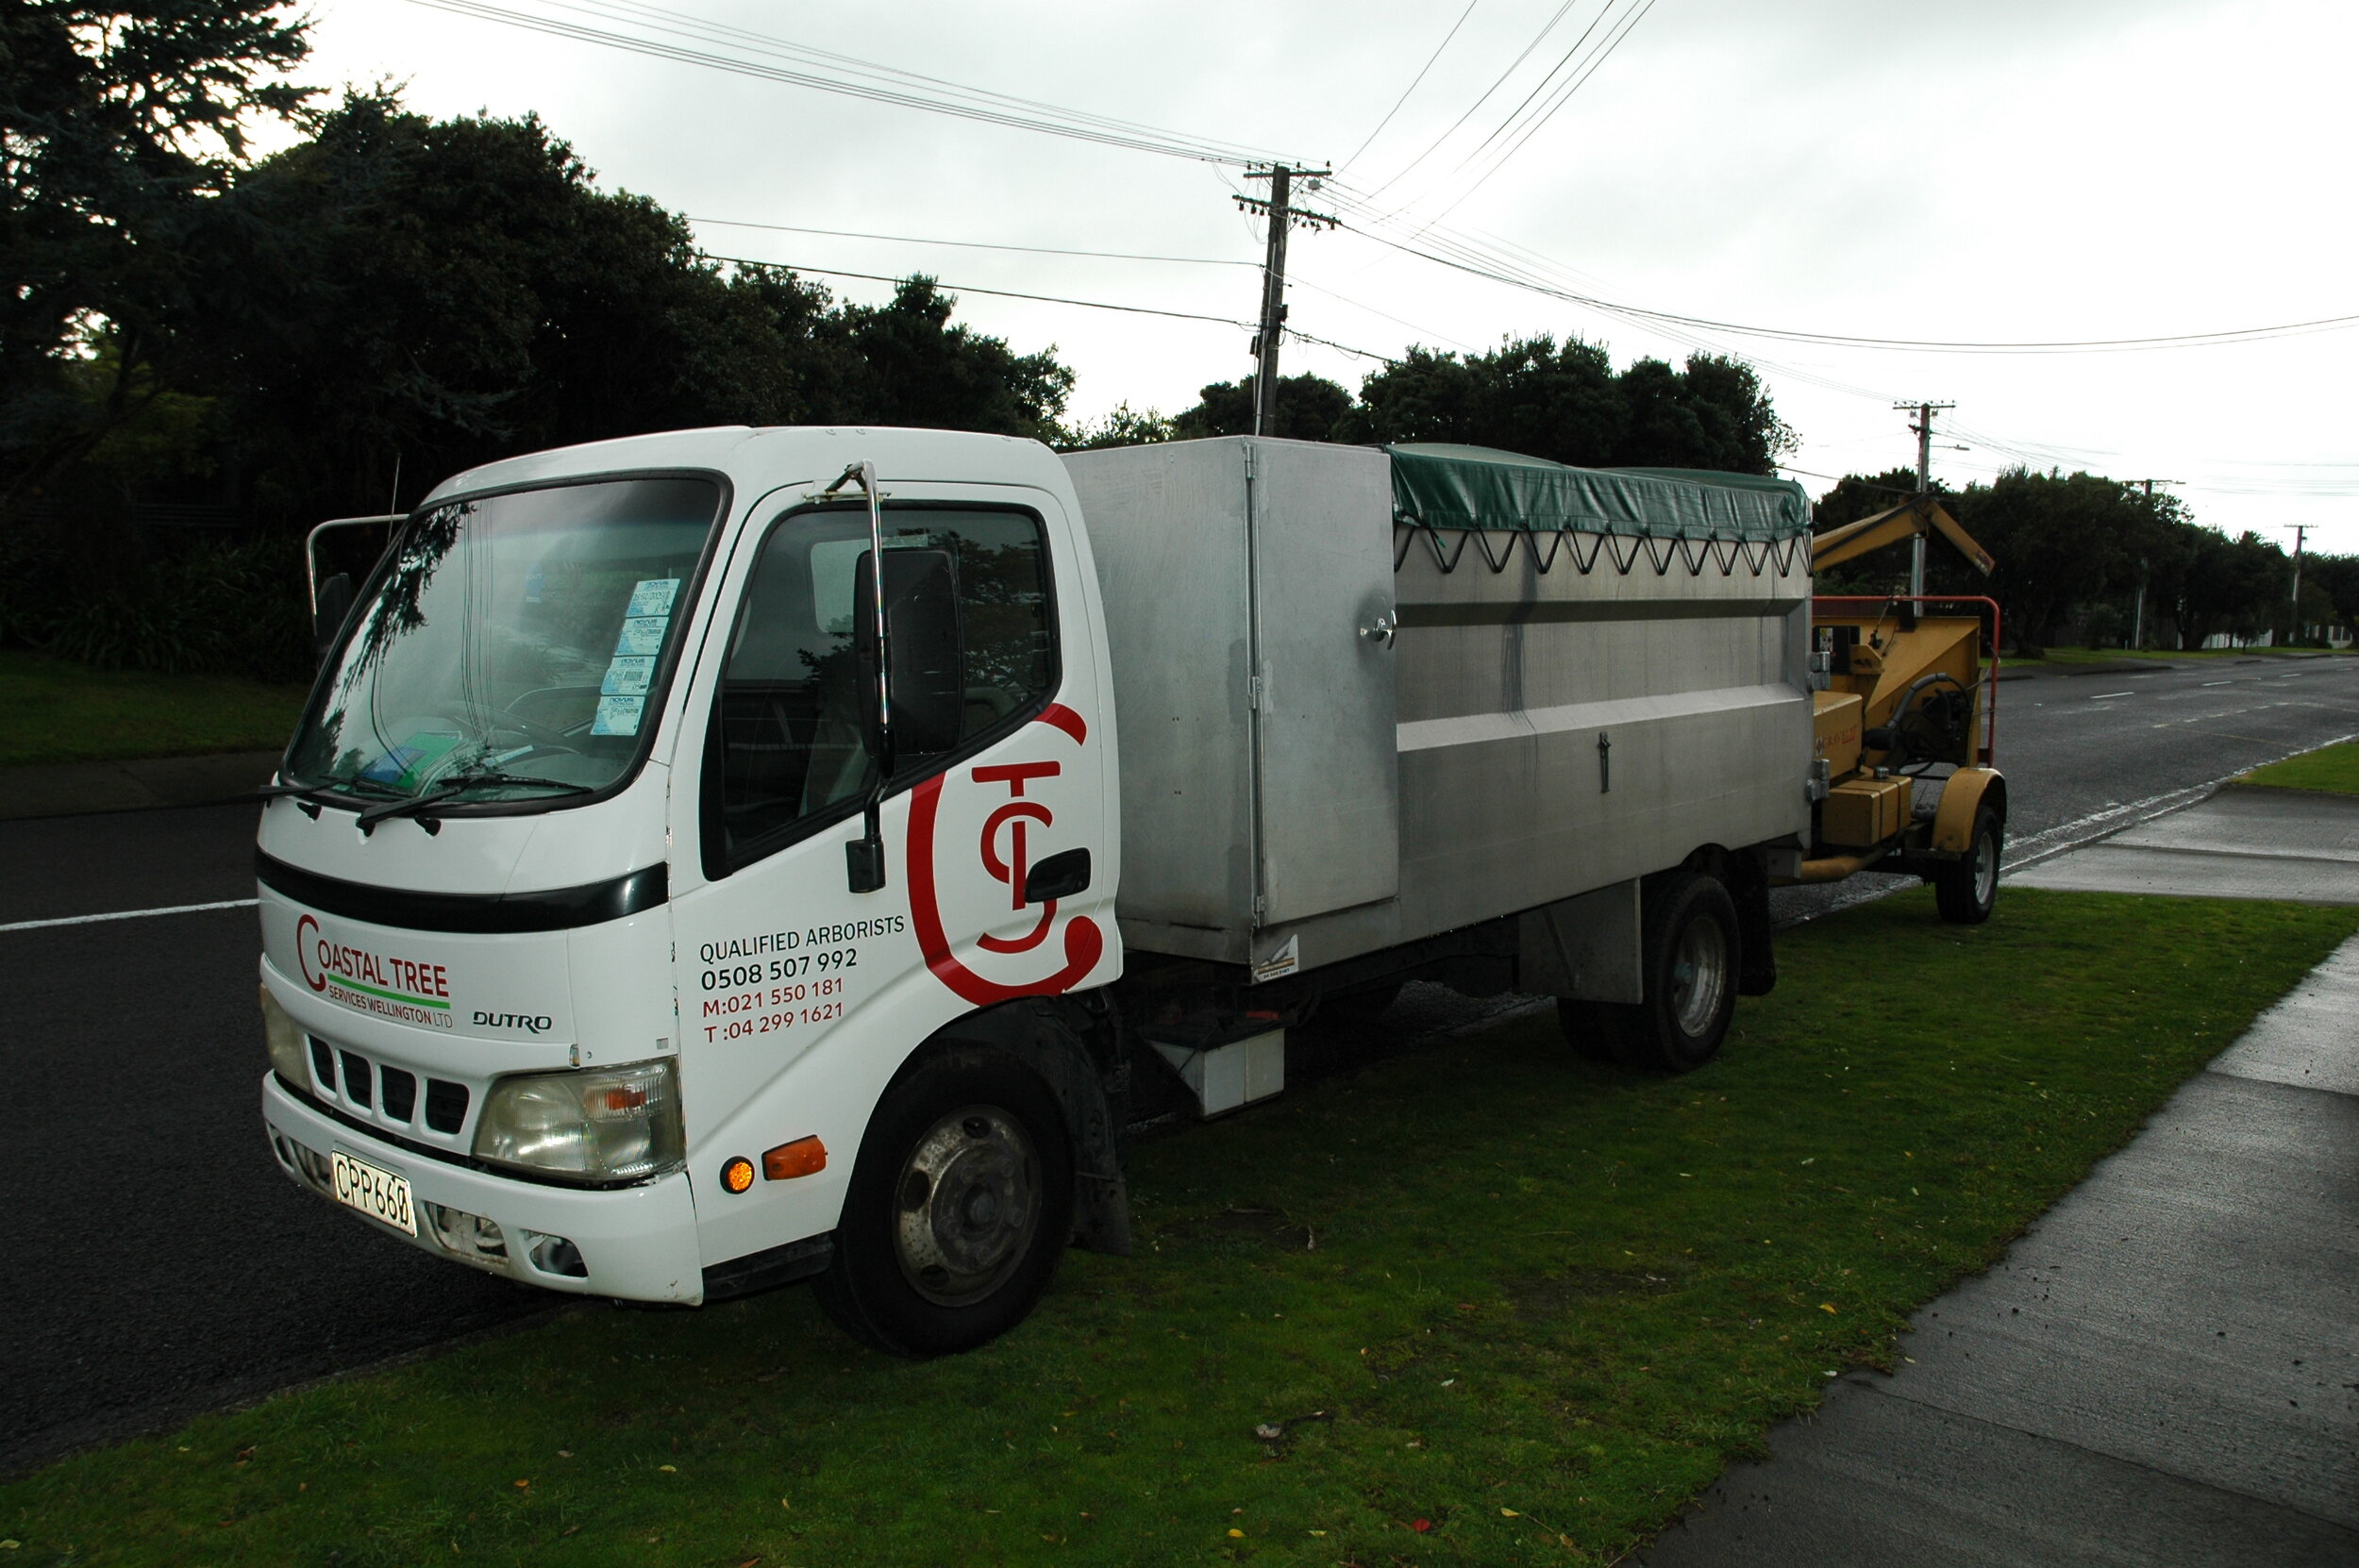 All inclusive service. - Coastal Tree Services Wellington Ltd cover all aspects of tree works & maintenance, both residential and commercial.Operating with aQualified Arborist, you can be assured that all work will be carried out to the highest possible best practice & safety standards, with the health of the tree or shrub first & foremost with minimal environmental impacts.Across the Wellington Region we can provide services such as tree removal & trimming(crown reduction, crown thinning, crown lifting and formative pruning), tree bracing / cabling, pruning,hedging & hedge trimming, stump grinding, clearing, chipping, mulching,pesticide sprayingand  tree report services. We offer these services in Wellington & the Kapiti Coast including; Wellington, Lower Hutt, Upper Hutt, Pukerua Bay, Paekakariki, Raumati, Paraparaumu, Otaihanga, Waikanae, Peka Peka, Te Horo, Otaki, Manakau, Ohau, and Levin.Our crew continuously train & maintain the best possible arboricultural standards using well-maintained & modern equipment & are adept in tree works; from the largest job to the smallest job.With our free quote system you can be assured that we will offer the best advice available, taking into account your requirements, the local environment & the health of the surrounding area.You can also feel assured by the fact that the individual who comes  and gives you the quote, will be onsite to do the work. What this means  is that you can feel confident that you don't need to explain the works  once more and that any particular concerns you expressed will be taken  into consideration.